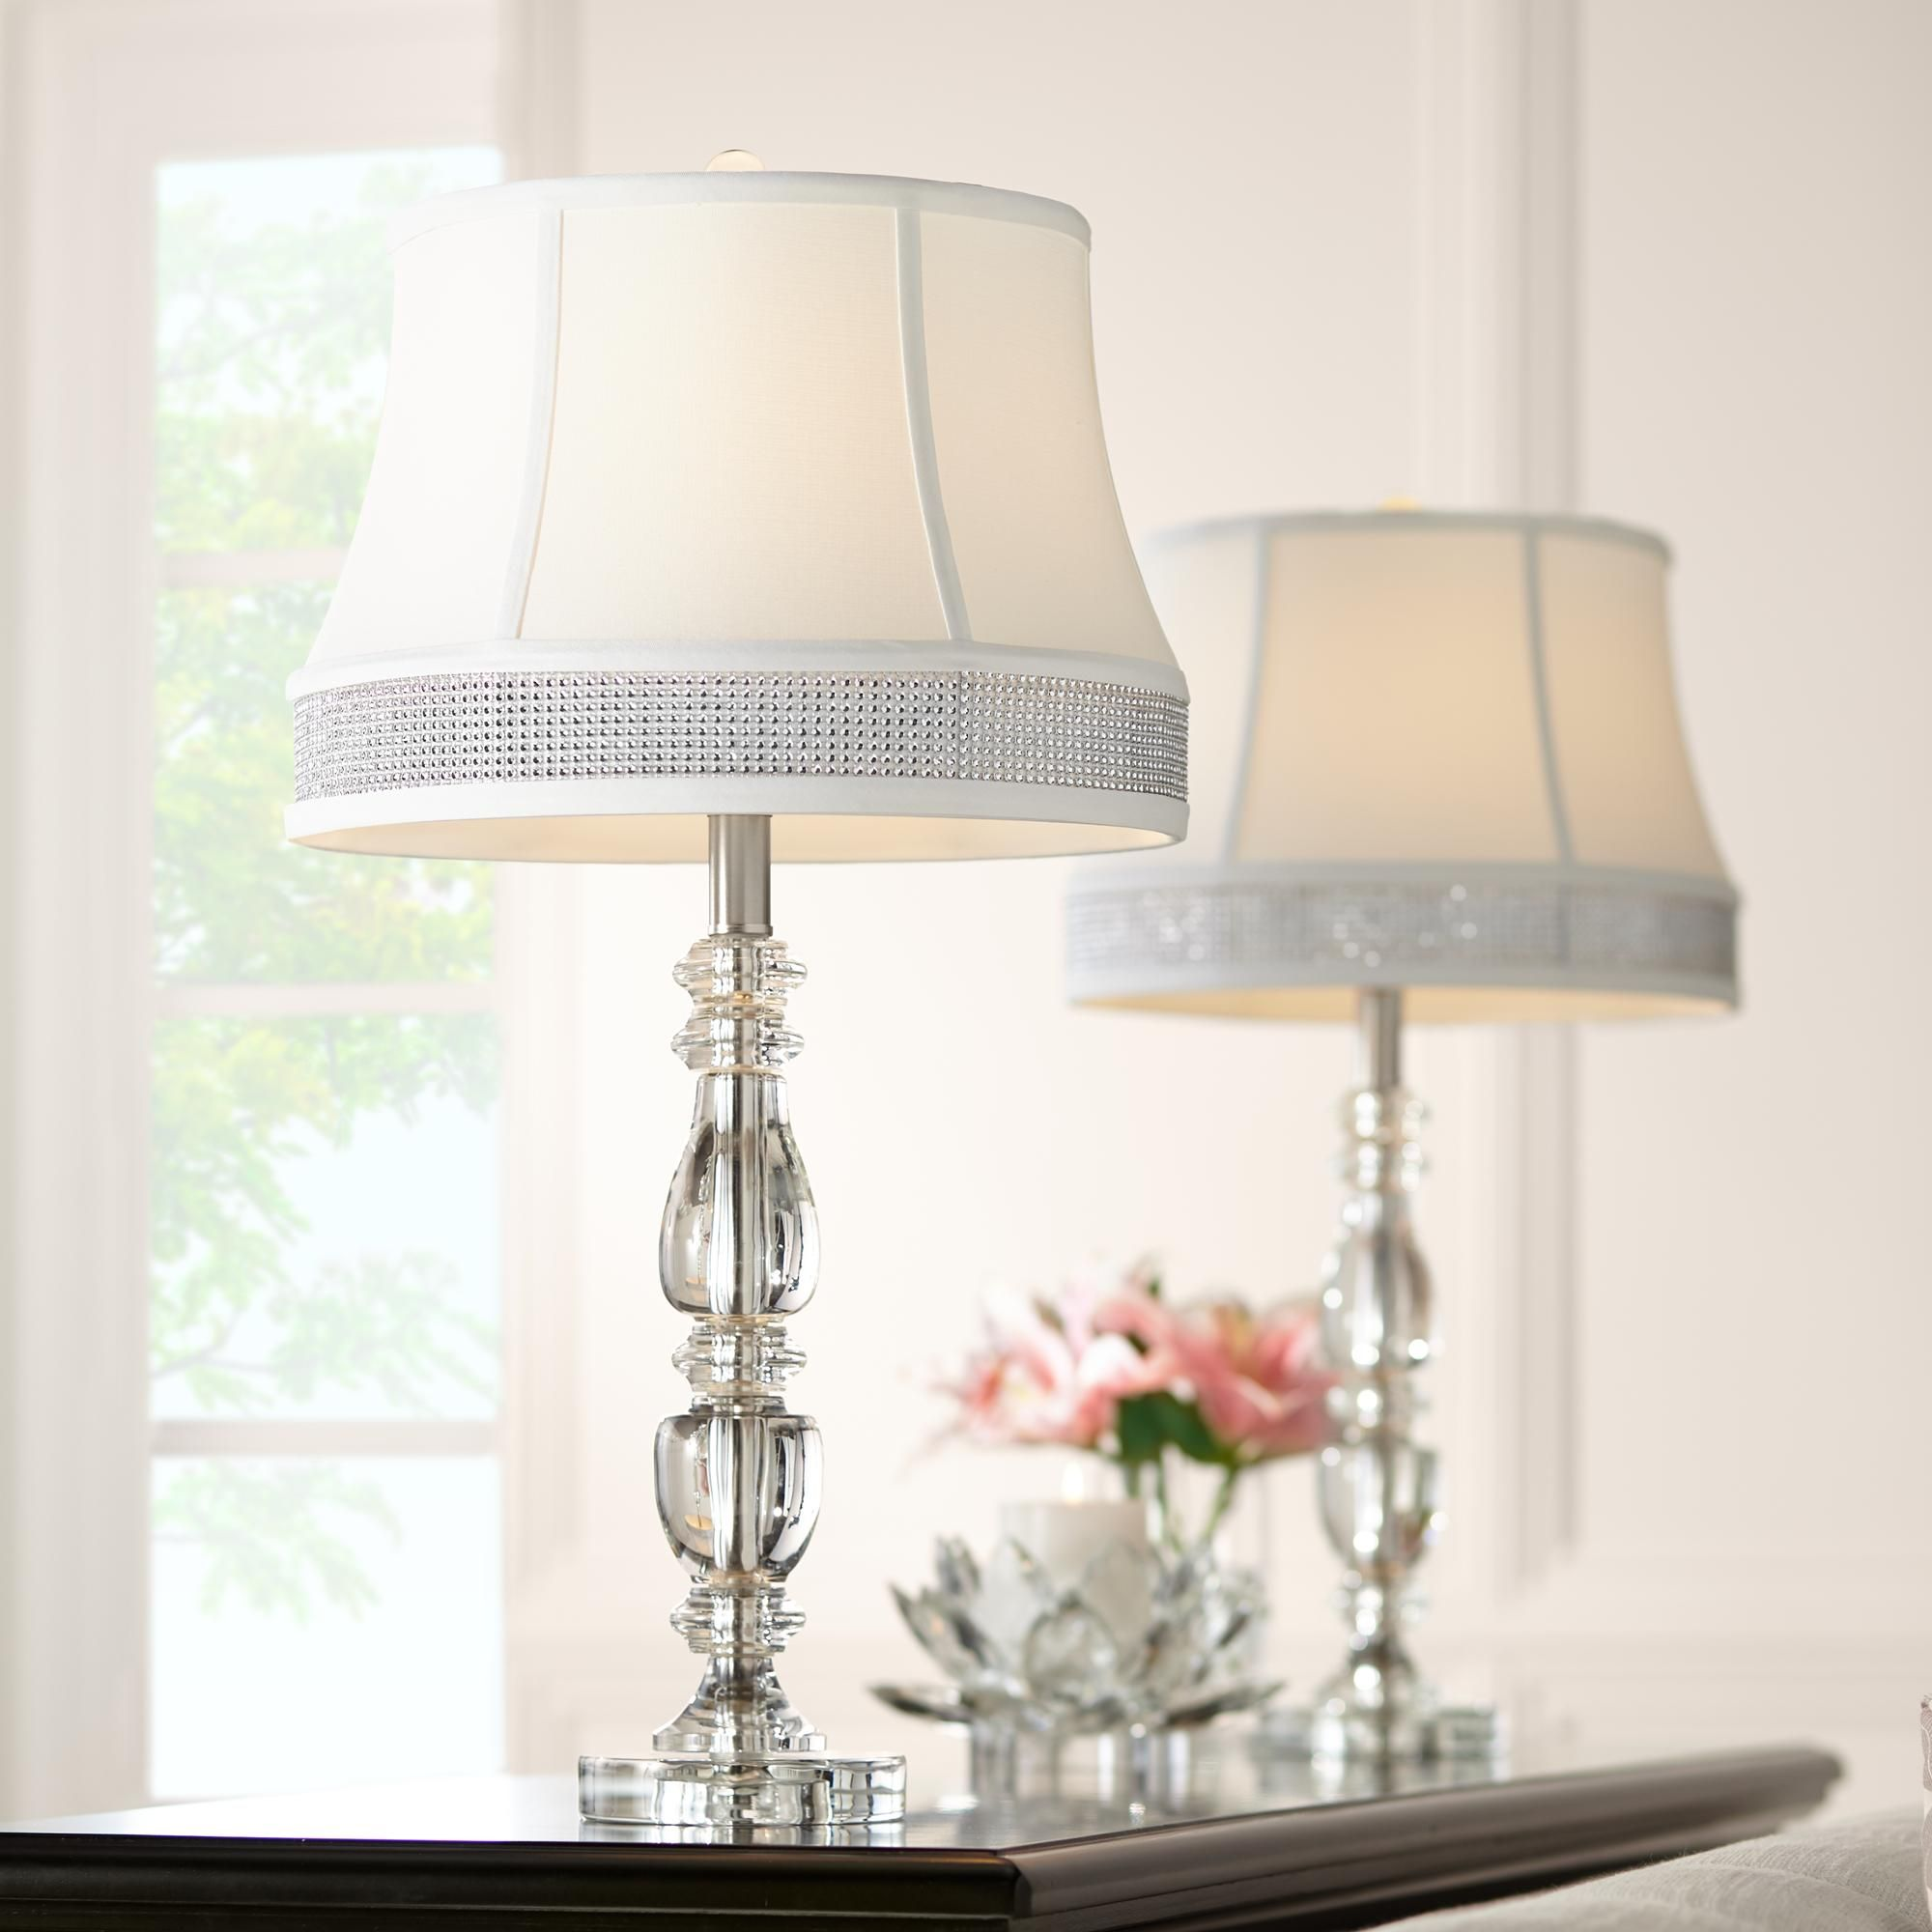 Ana Crystal Table Lamps Set Of 2 With Gallery Bling Shades